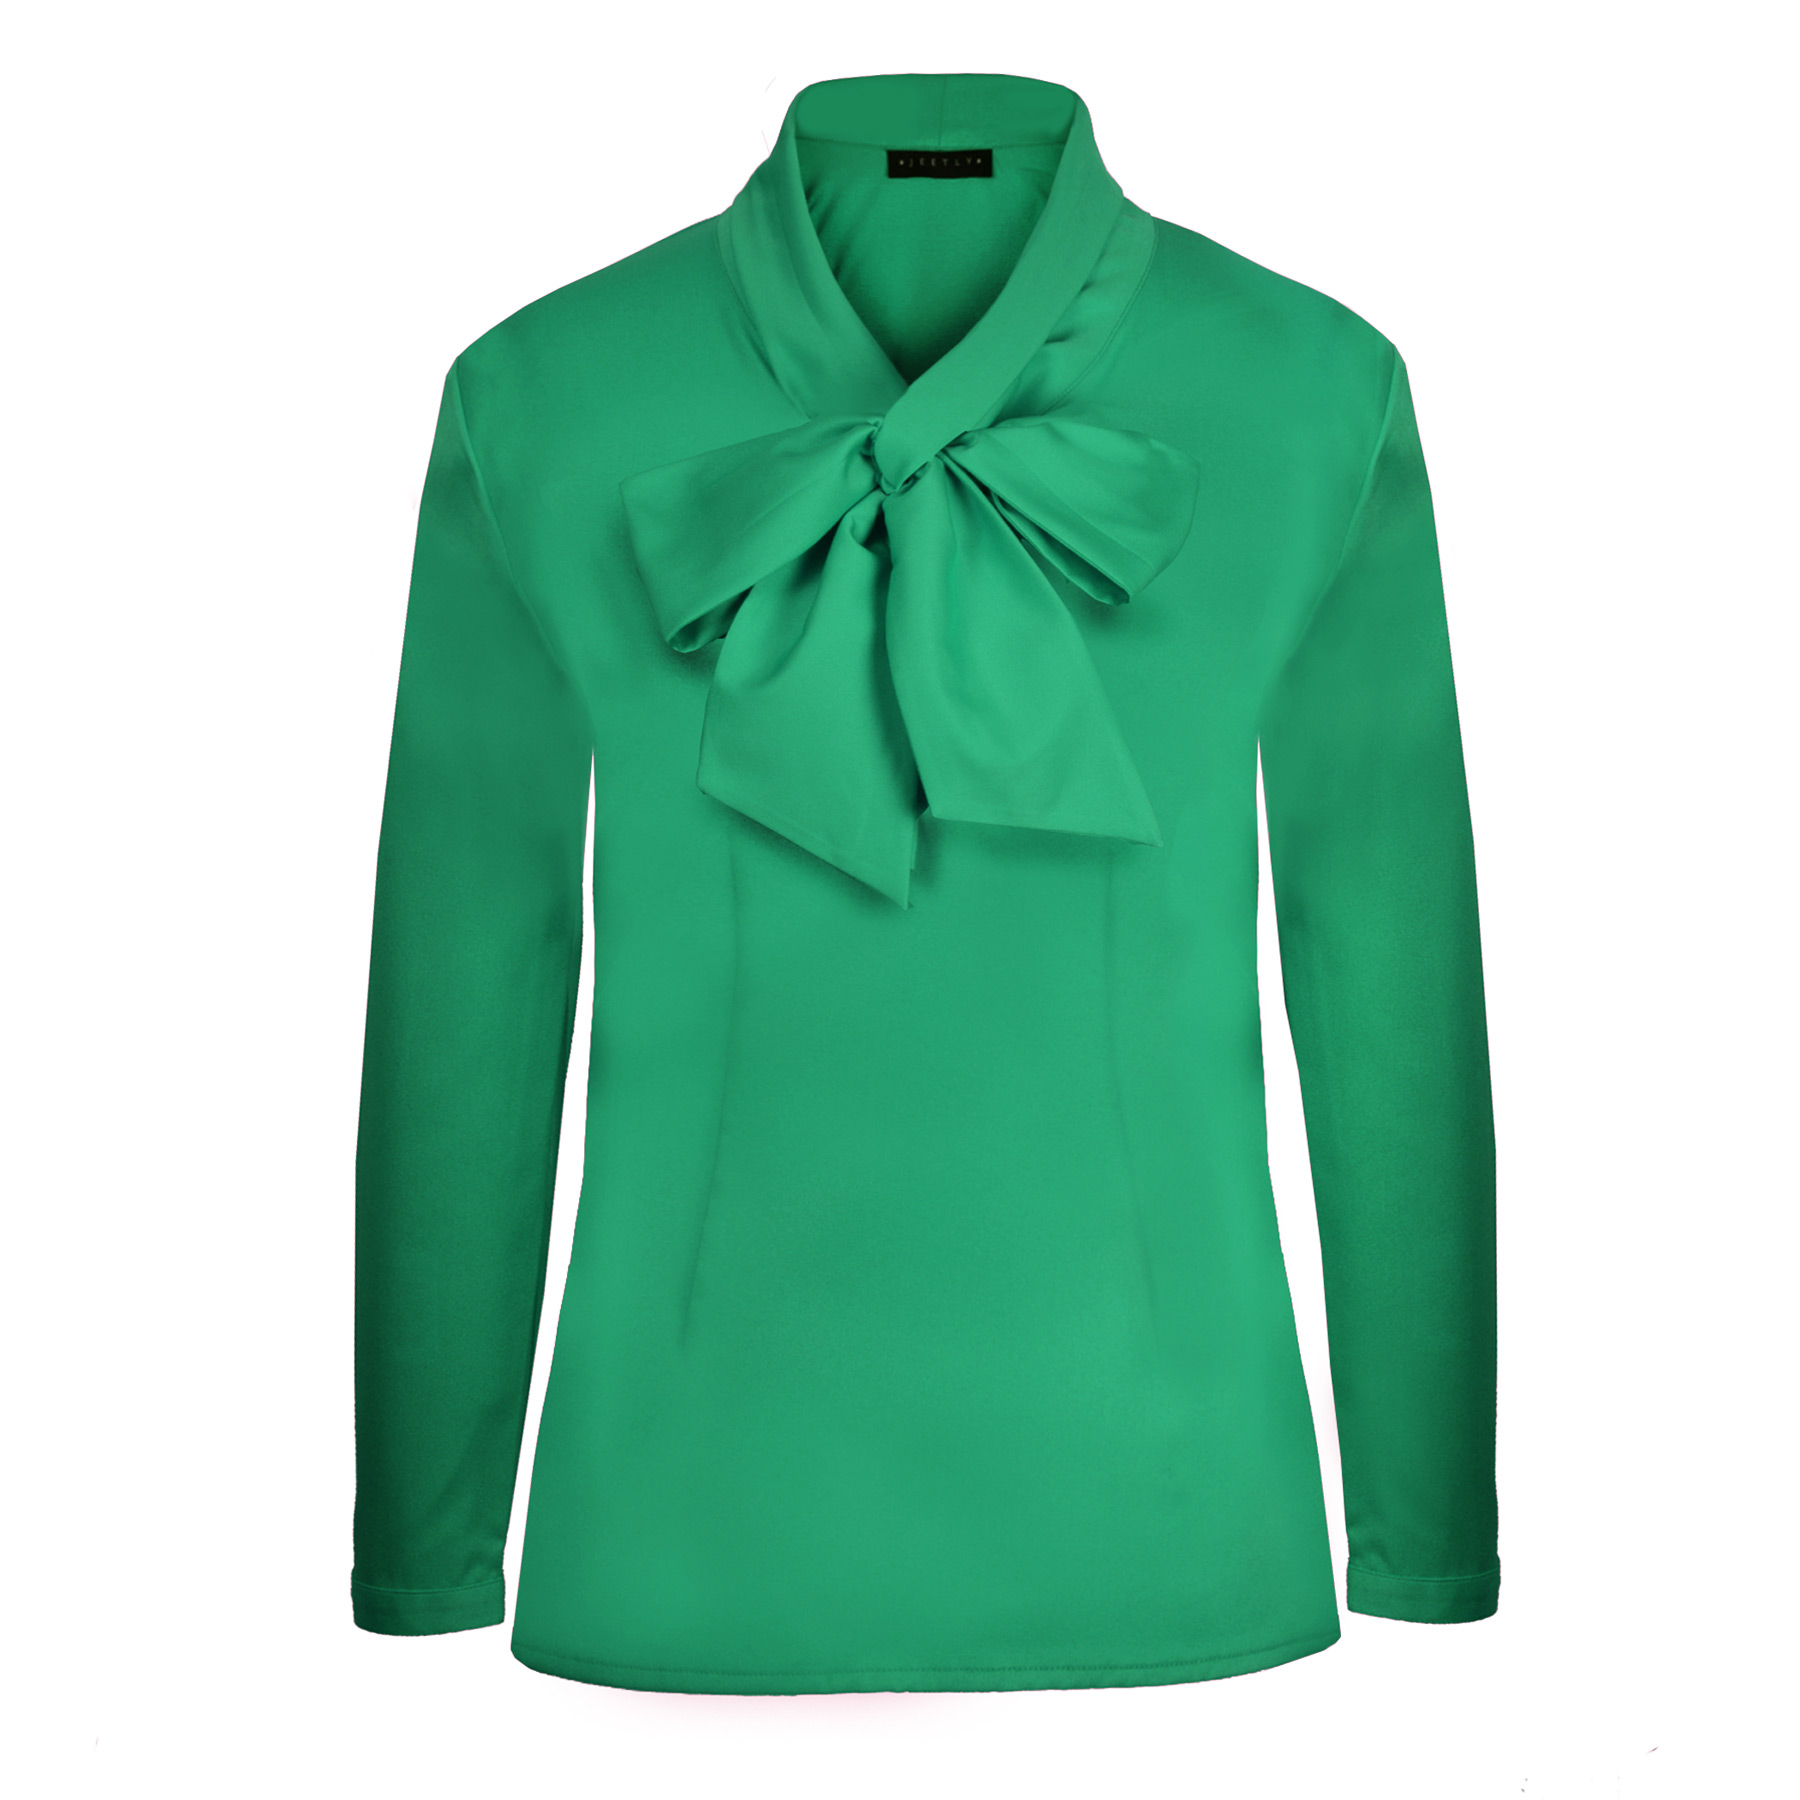 Green Blouse Uk 106